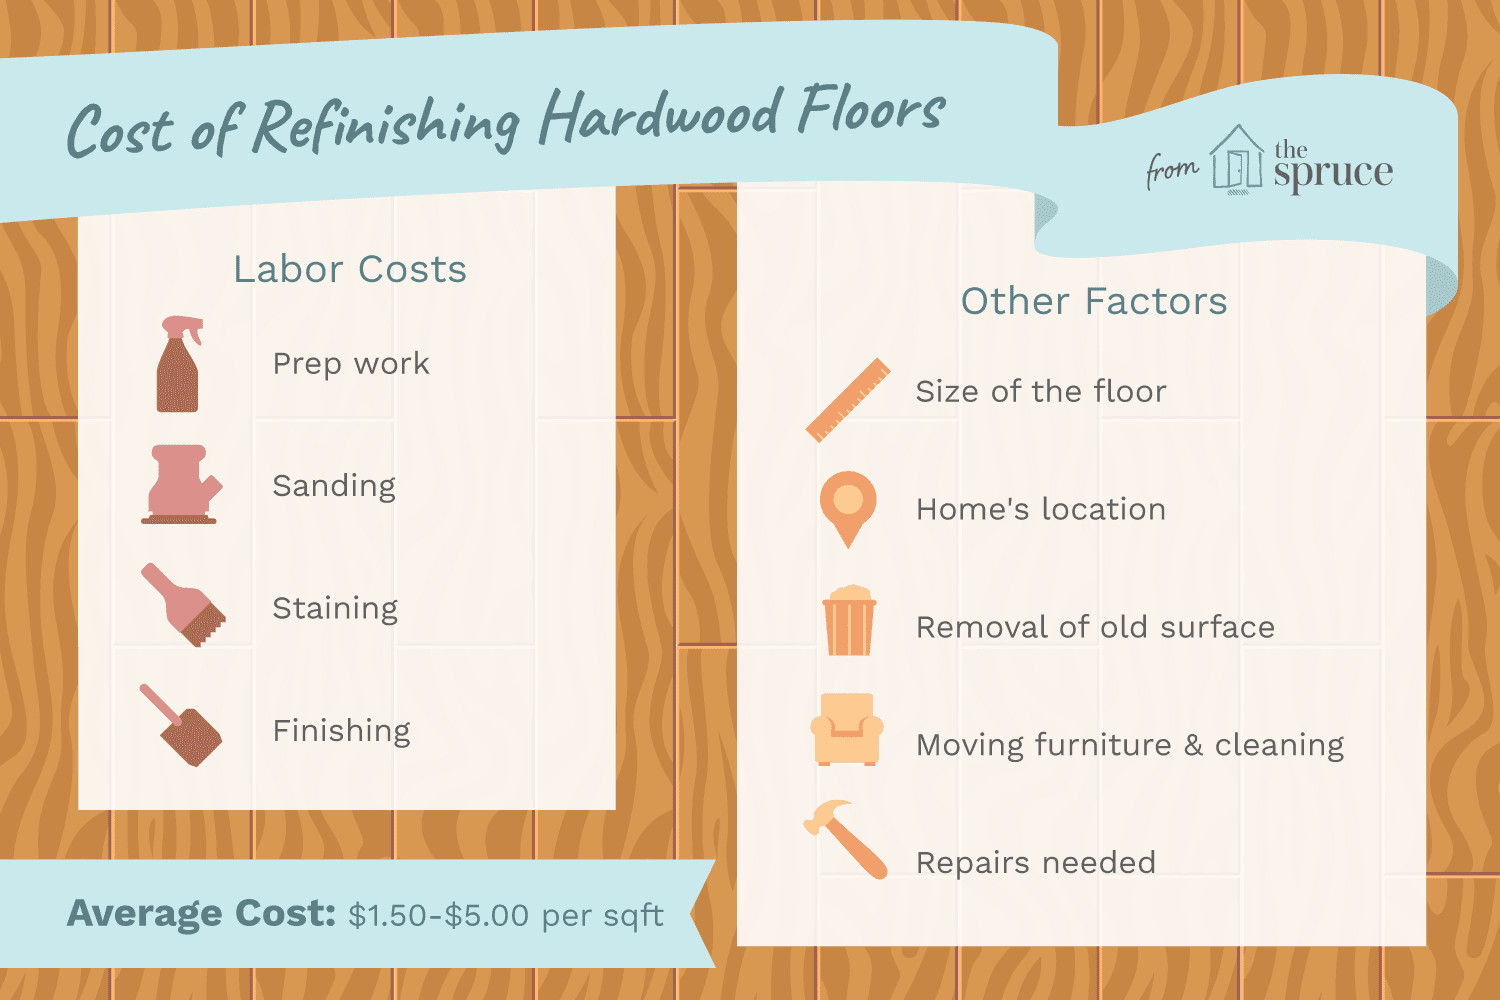 hardwood floor refinishing calgary of the cost to refinish hardwood floors with cost to refinish hardwood floors 1314853 final 5bb6259346e0fb0026825ce2